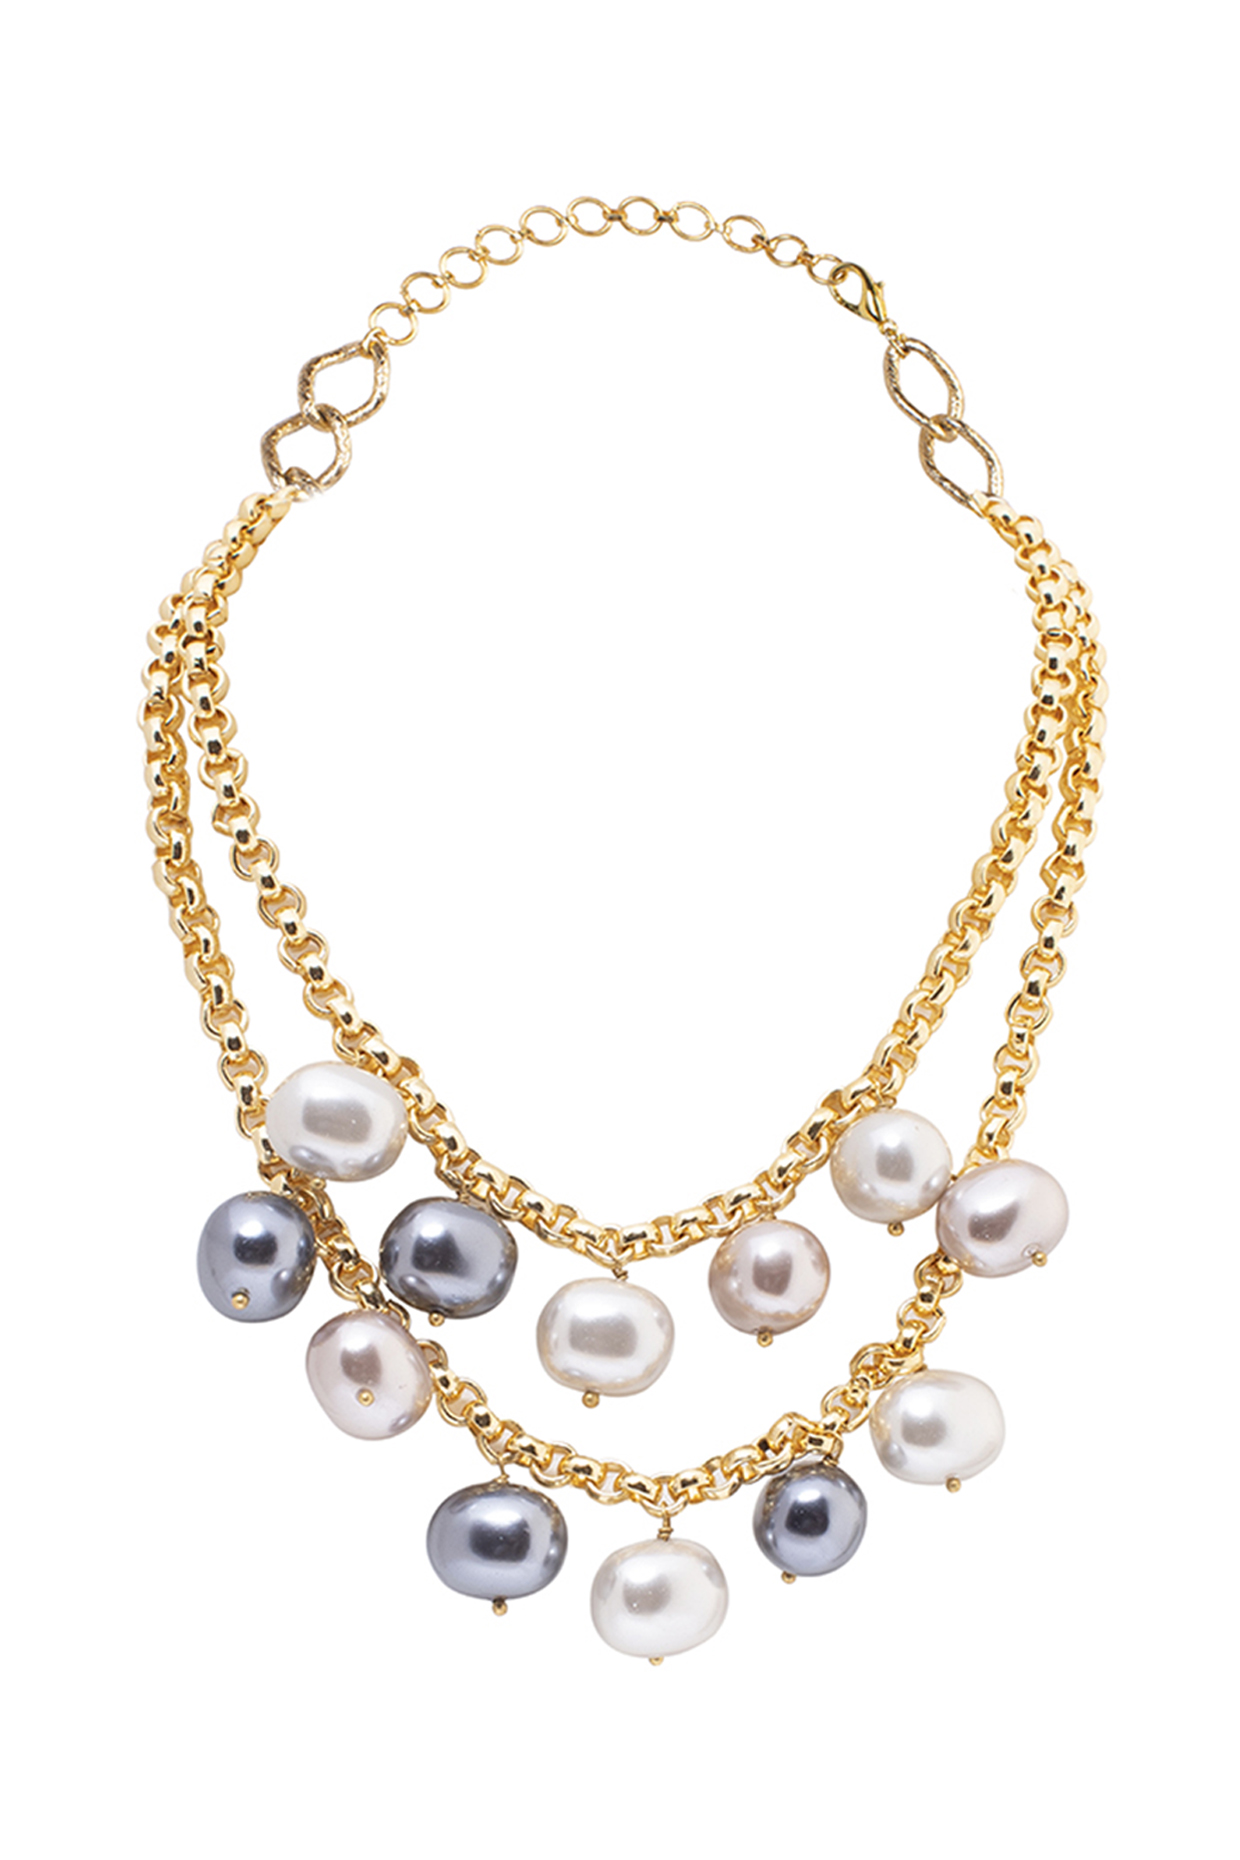 Gold Finish Necklace With Pearl by Joules By Radhika